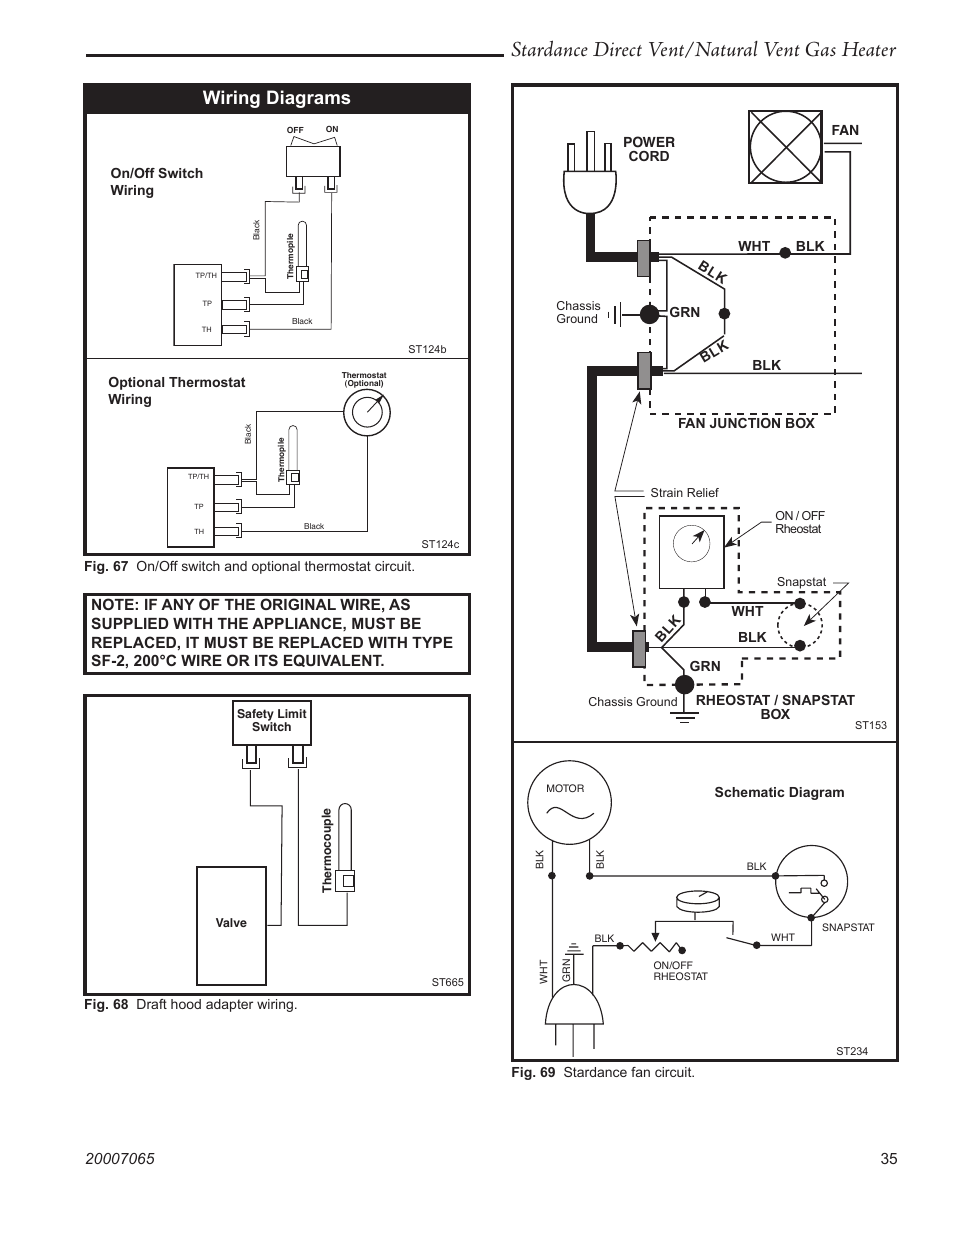 medium resolution of stardance direct vent natural vent gas heater wiring diagrams vermont casting stardance sdv30 user manual page 35 44